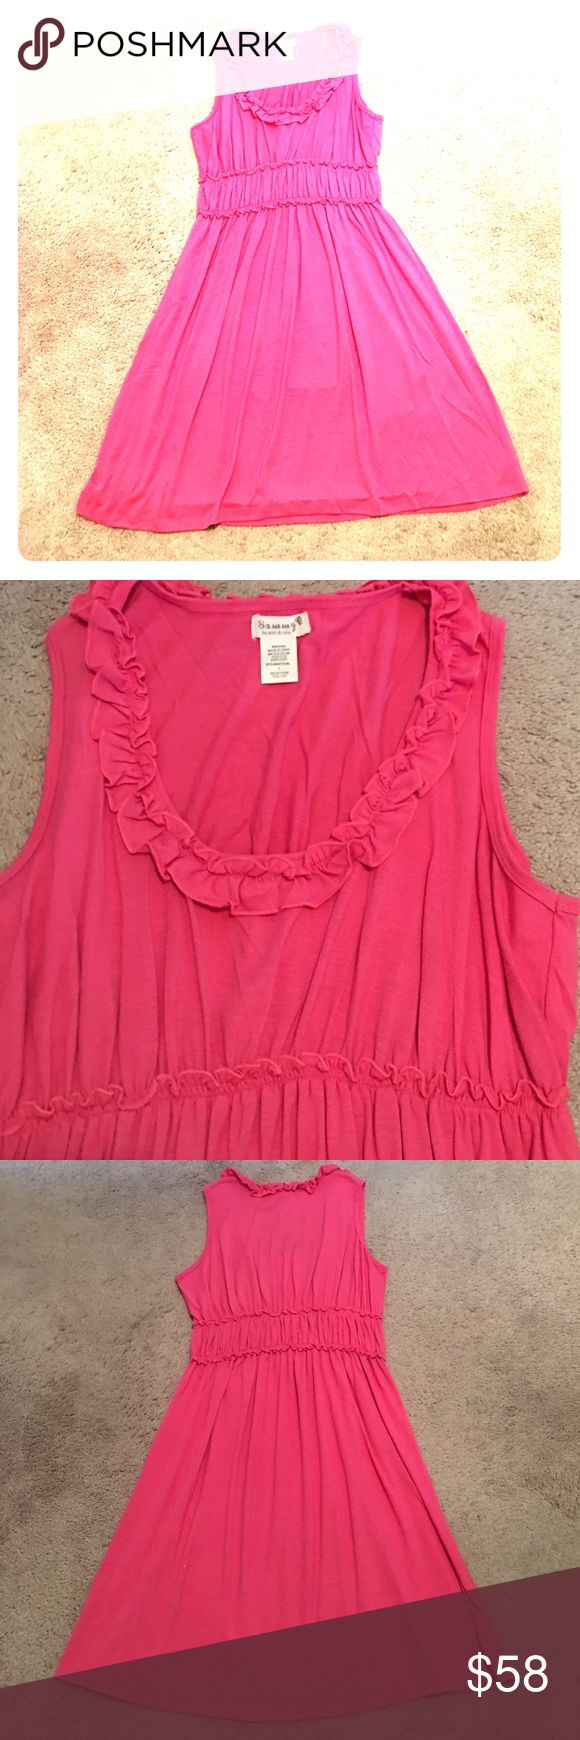 🌺SUMMER SALE🌺Nordstrom's pink summer dress From Sammy B by designers Sam and Max from Nordstrom this soft, comfortable, effortlessly cute and chic coral pink dress will be your go to summer staple! Excellent pre-loved condition! Nordstrom Dresses